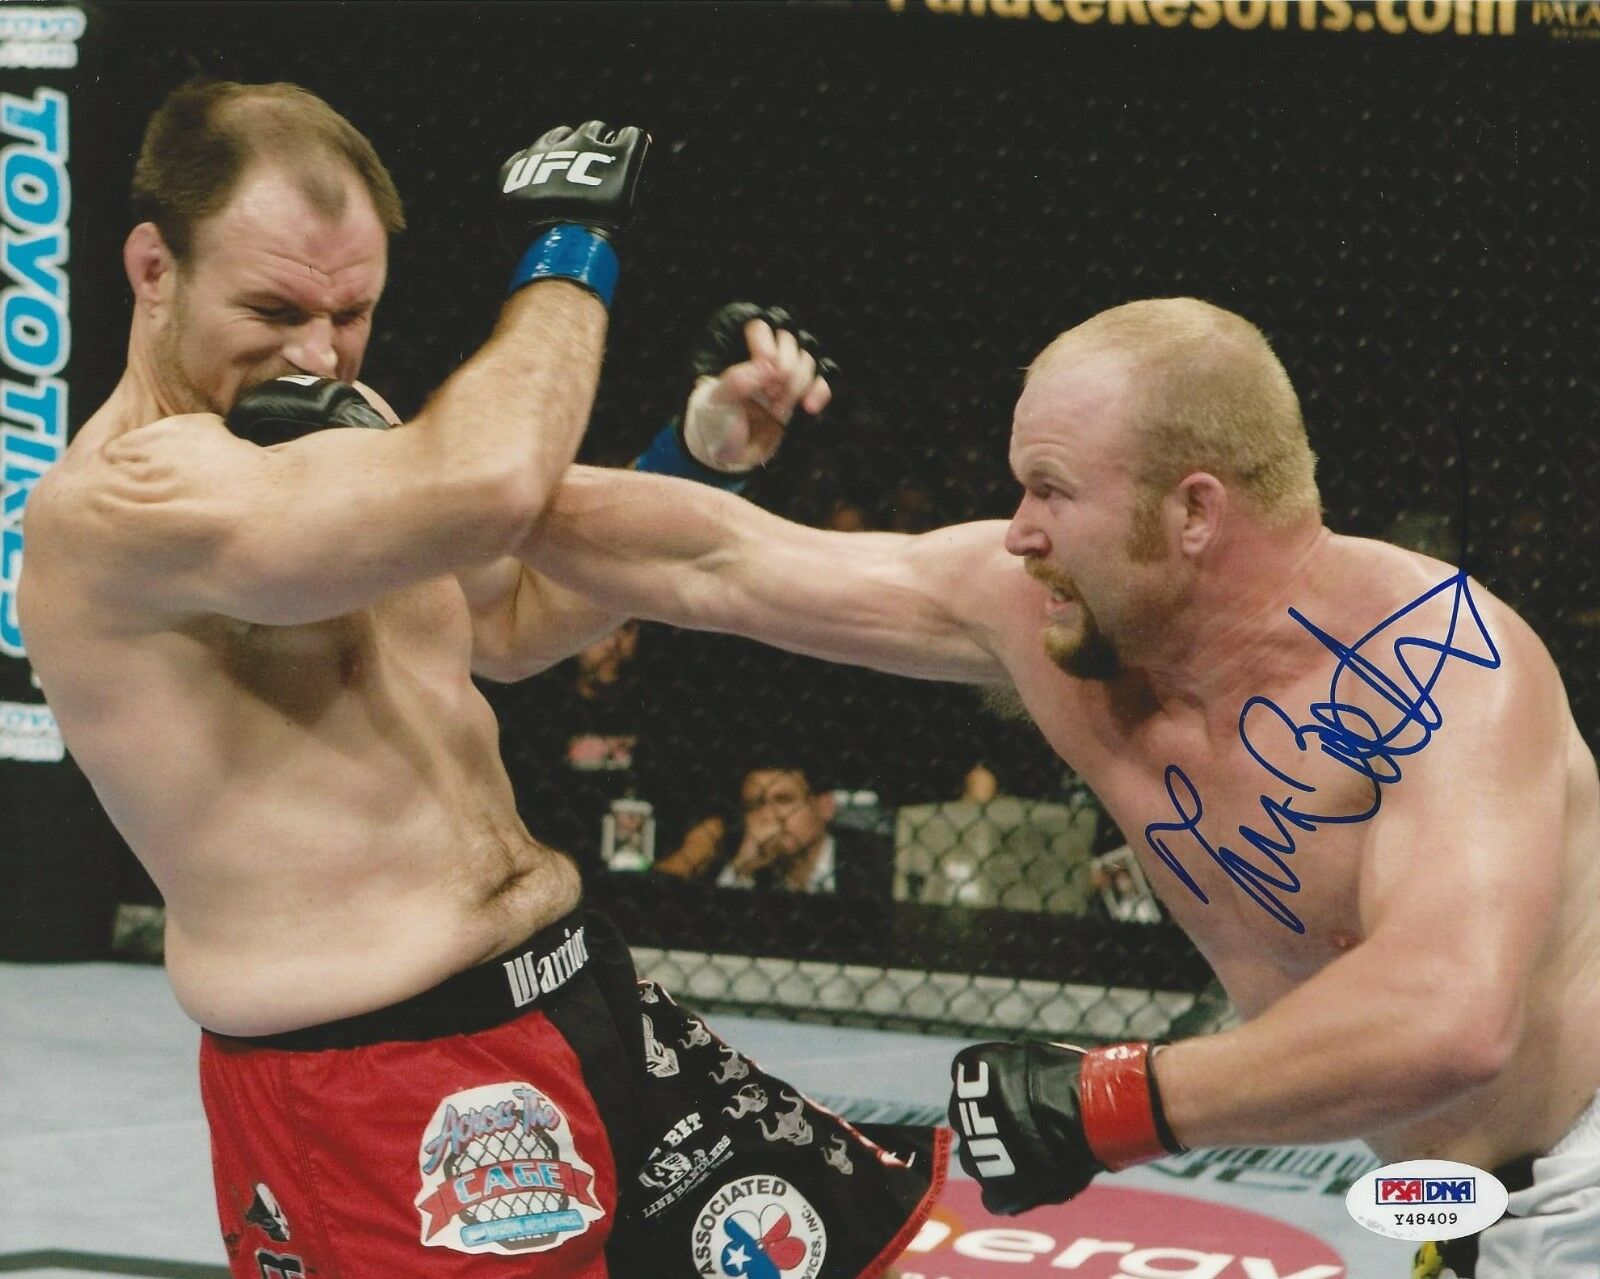 Tim Boetsch UFC Fighter signed 8x10 photo PSA/DNA # Y48409